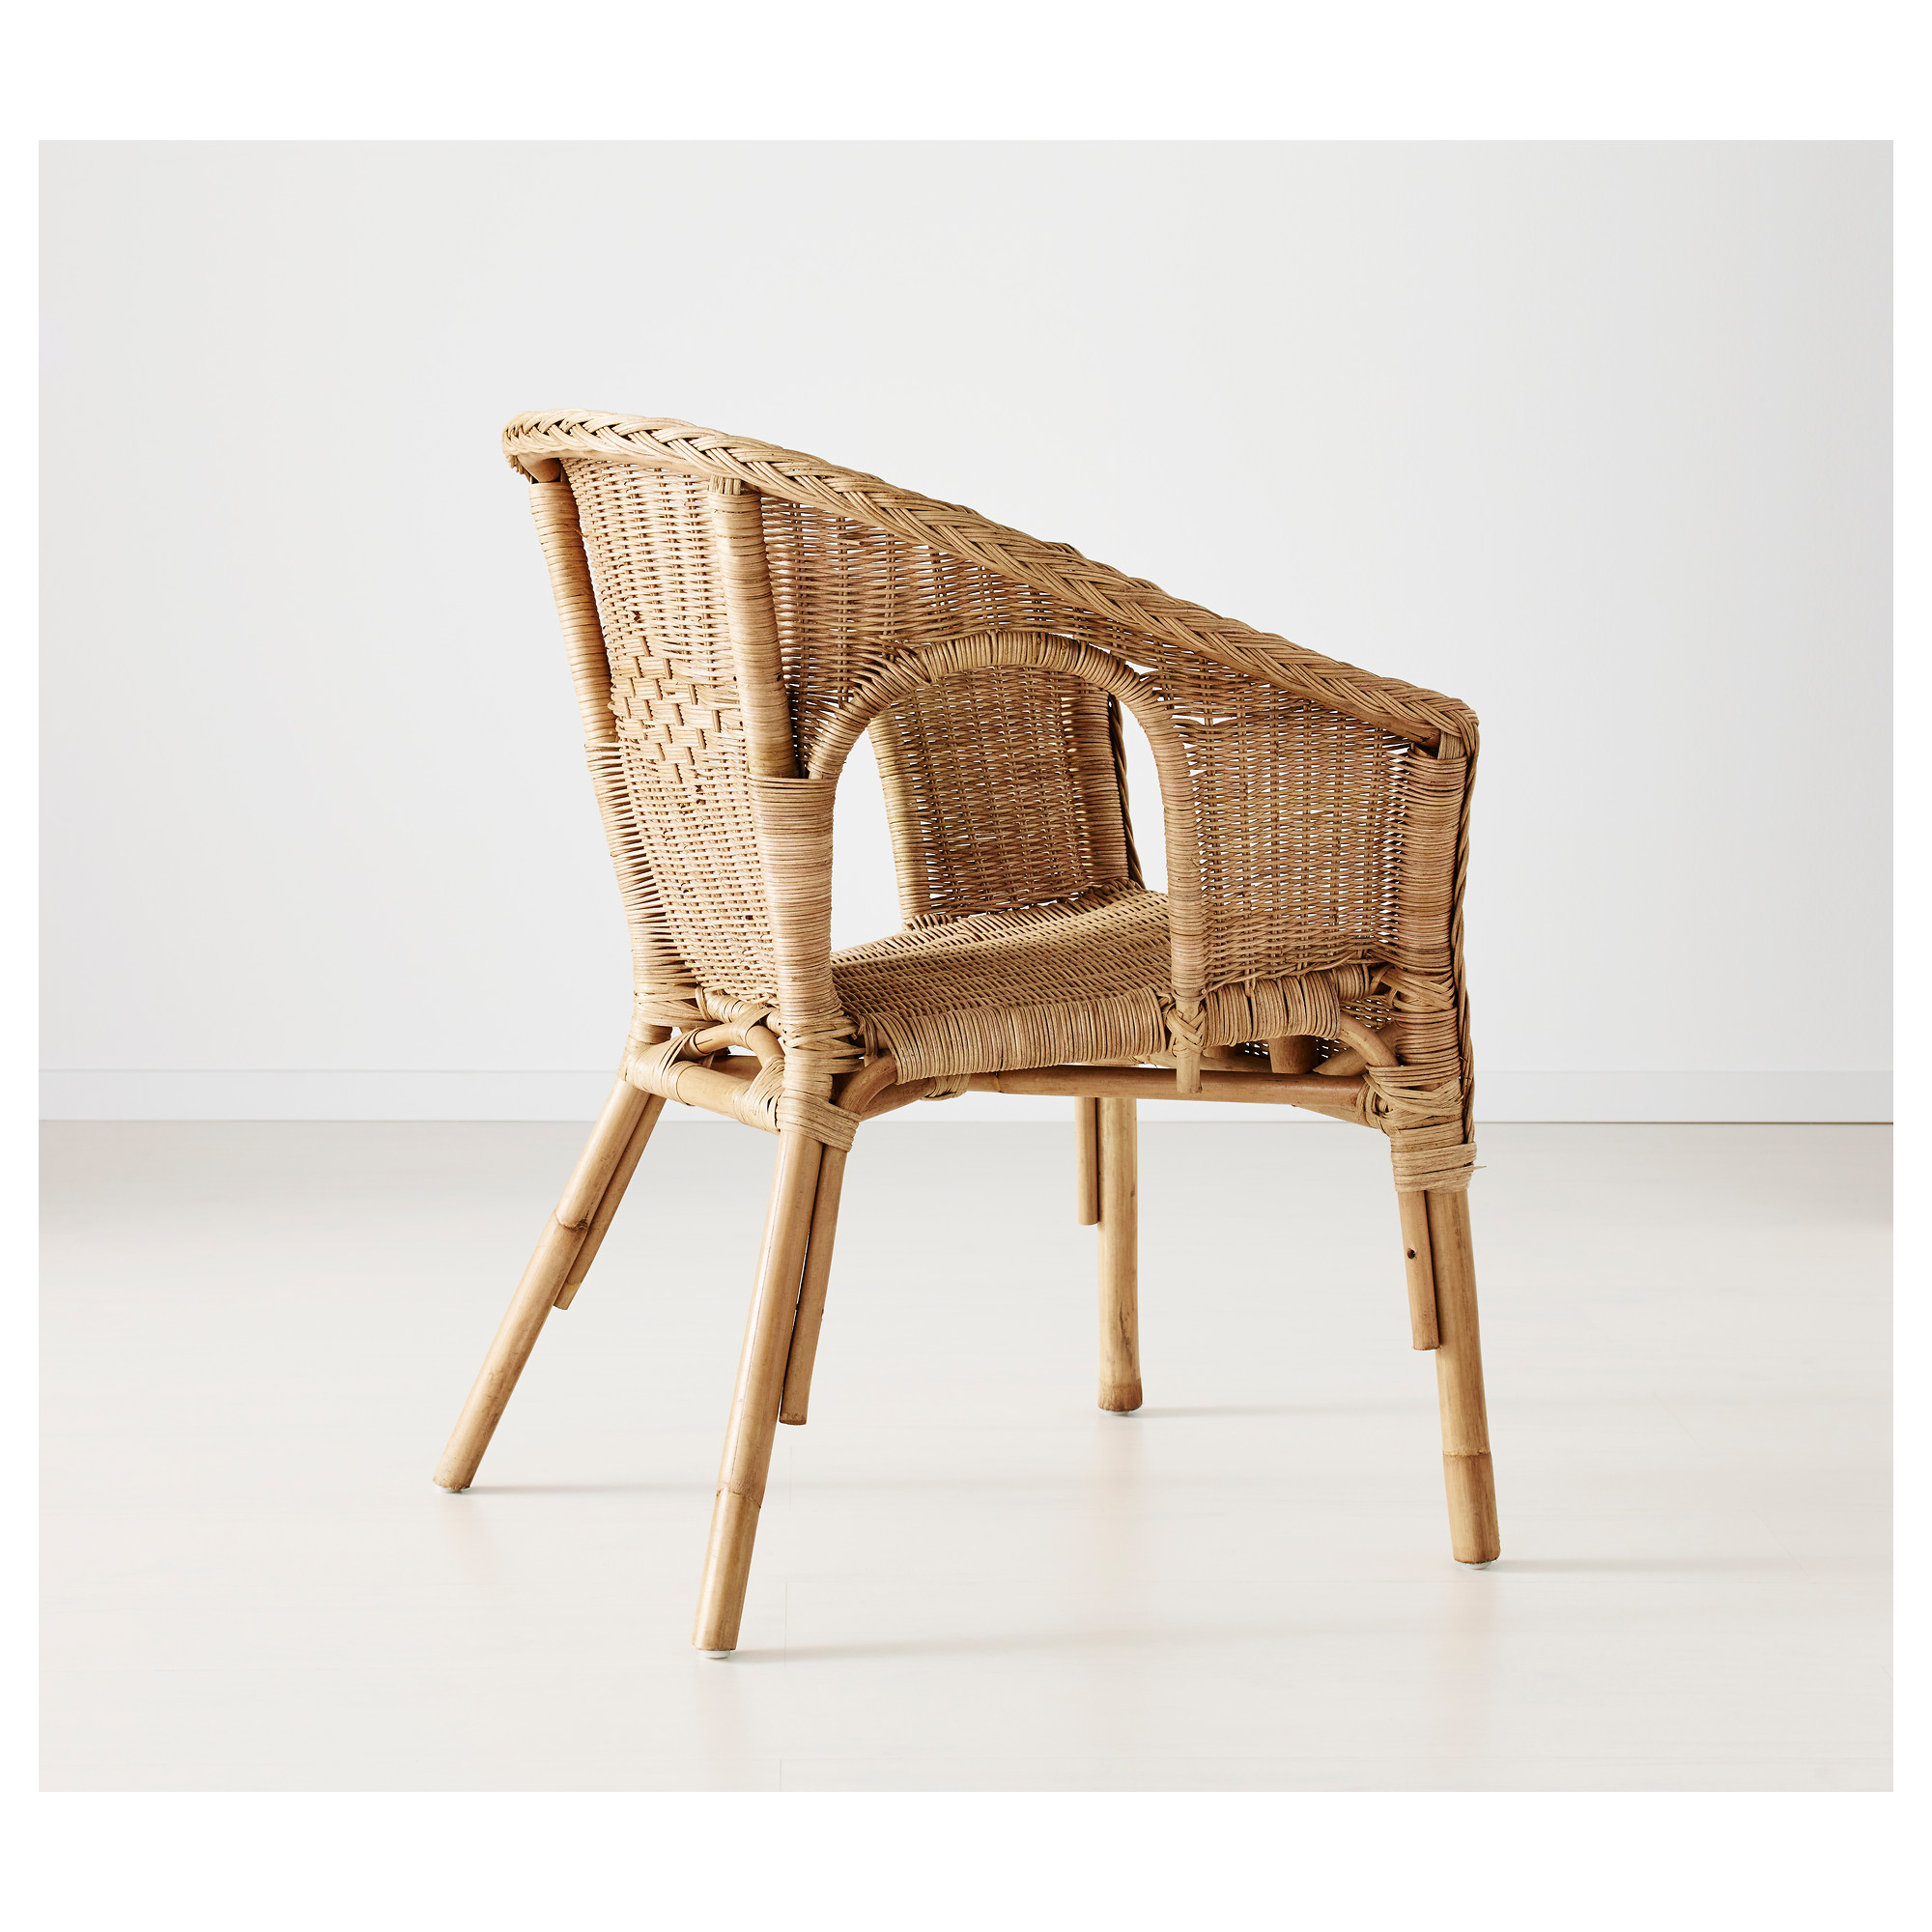 Basket chair ikea - Pier 1 Rattan Chair Large Wicker Chair Rattan Chair